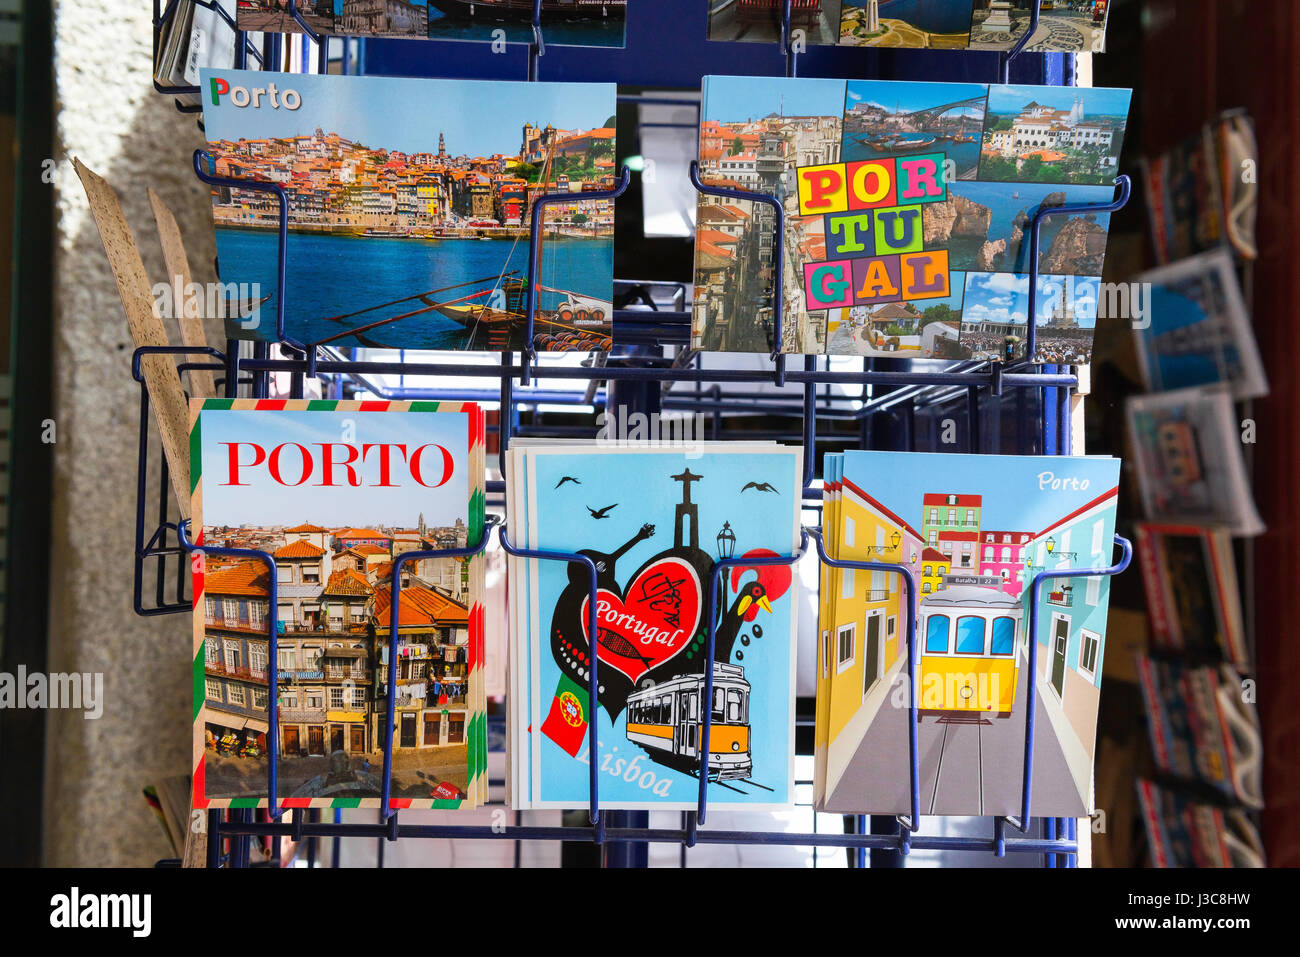 Porto Portugal shop, a display of postcards outside a shop in the Ribeira area of Porto, Portugal, Europe Stock Photo